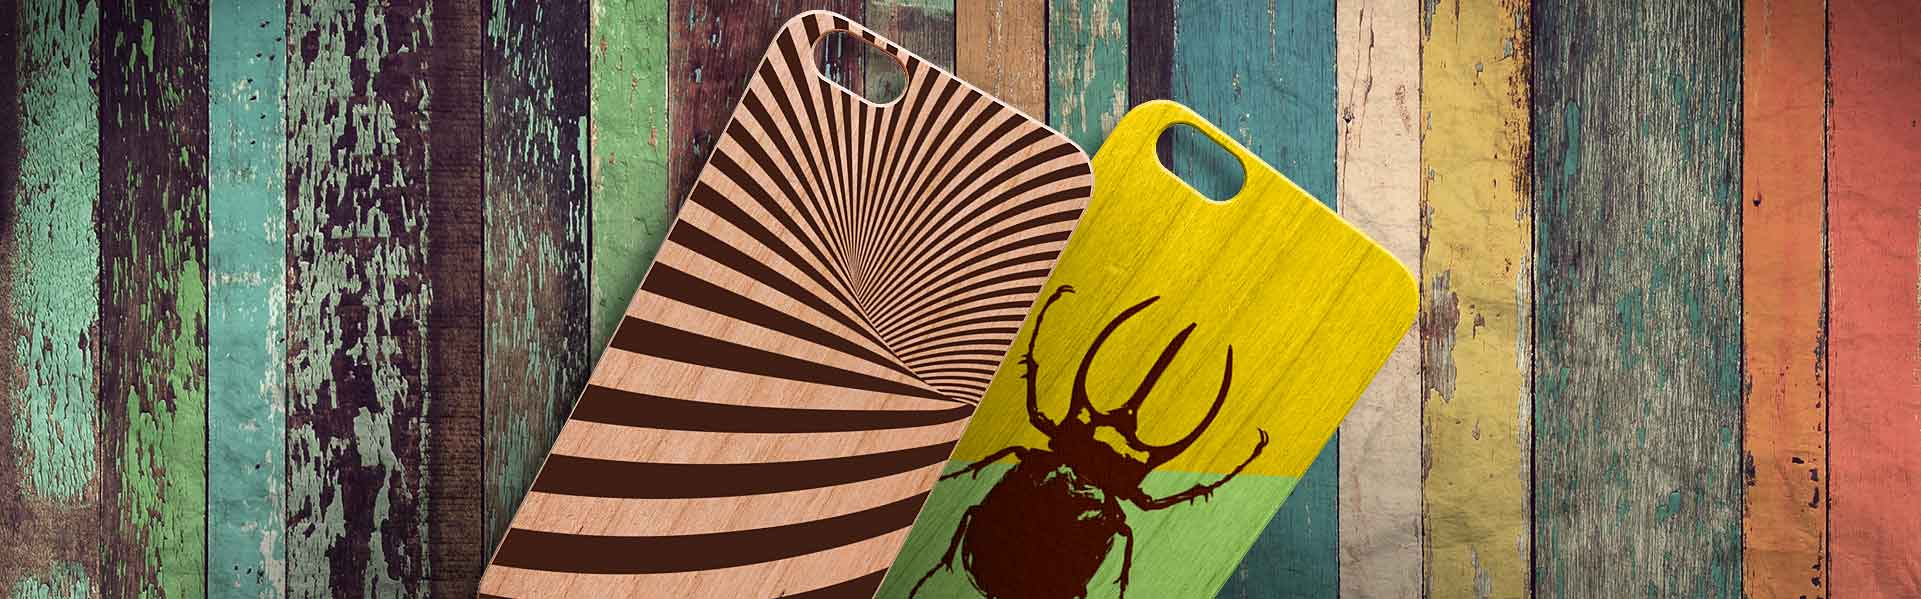 Wood Phone Cases - Wooden Mobile Covers in Dubai and UAE | Switch UAE